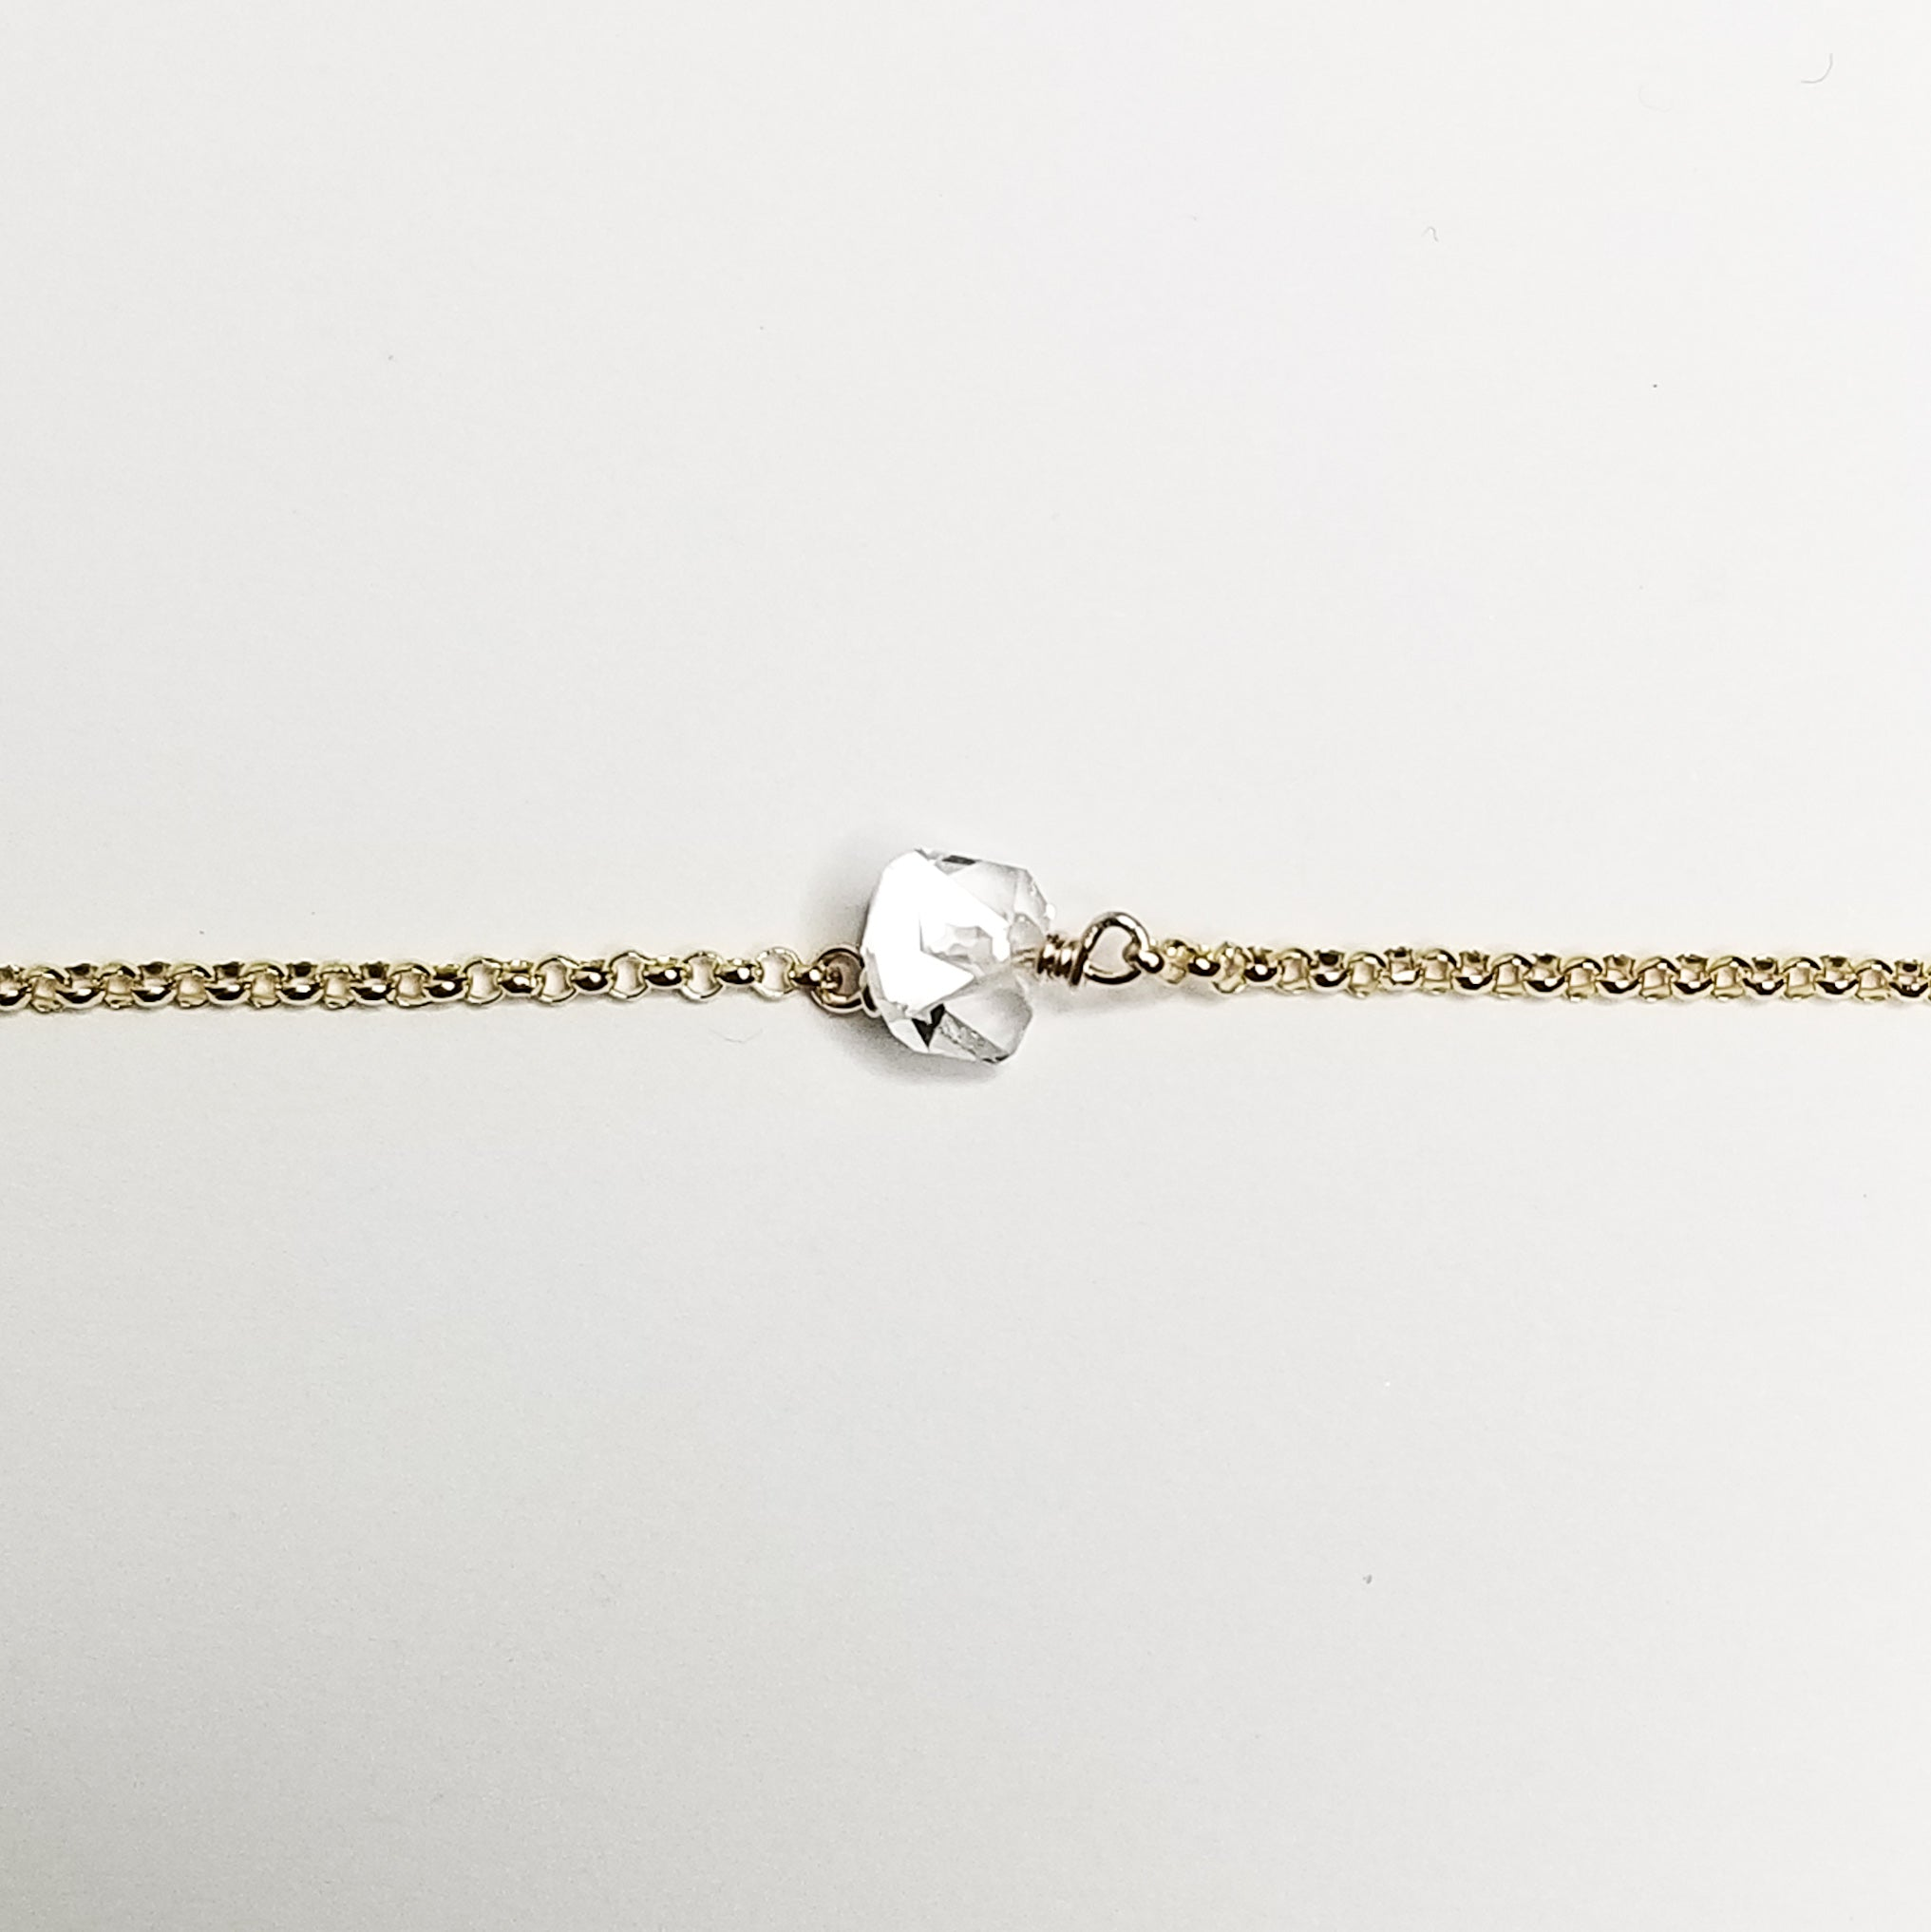 Herkimer diamond bracelet - 14k yellow gold filled